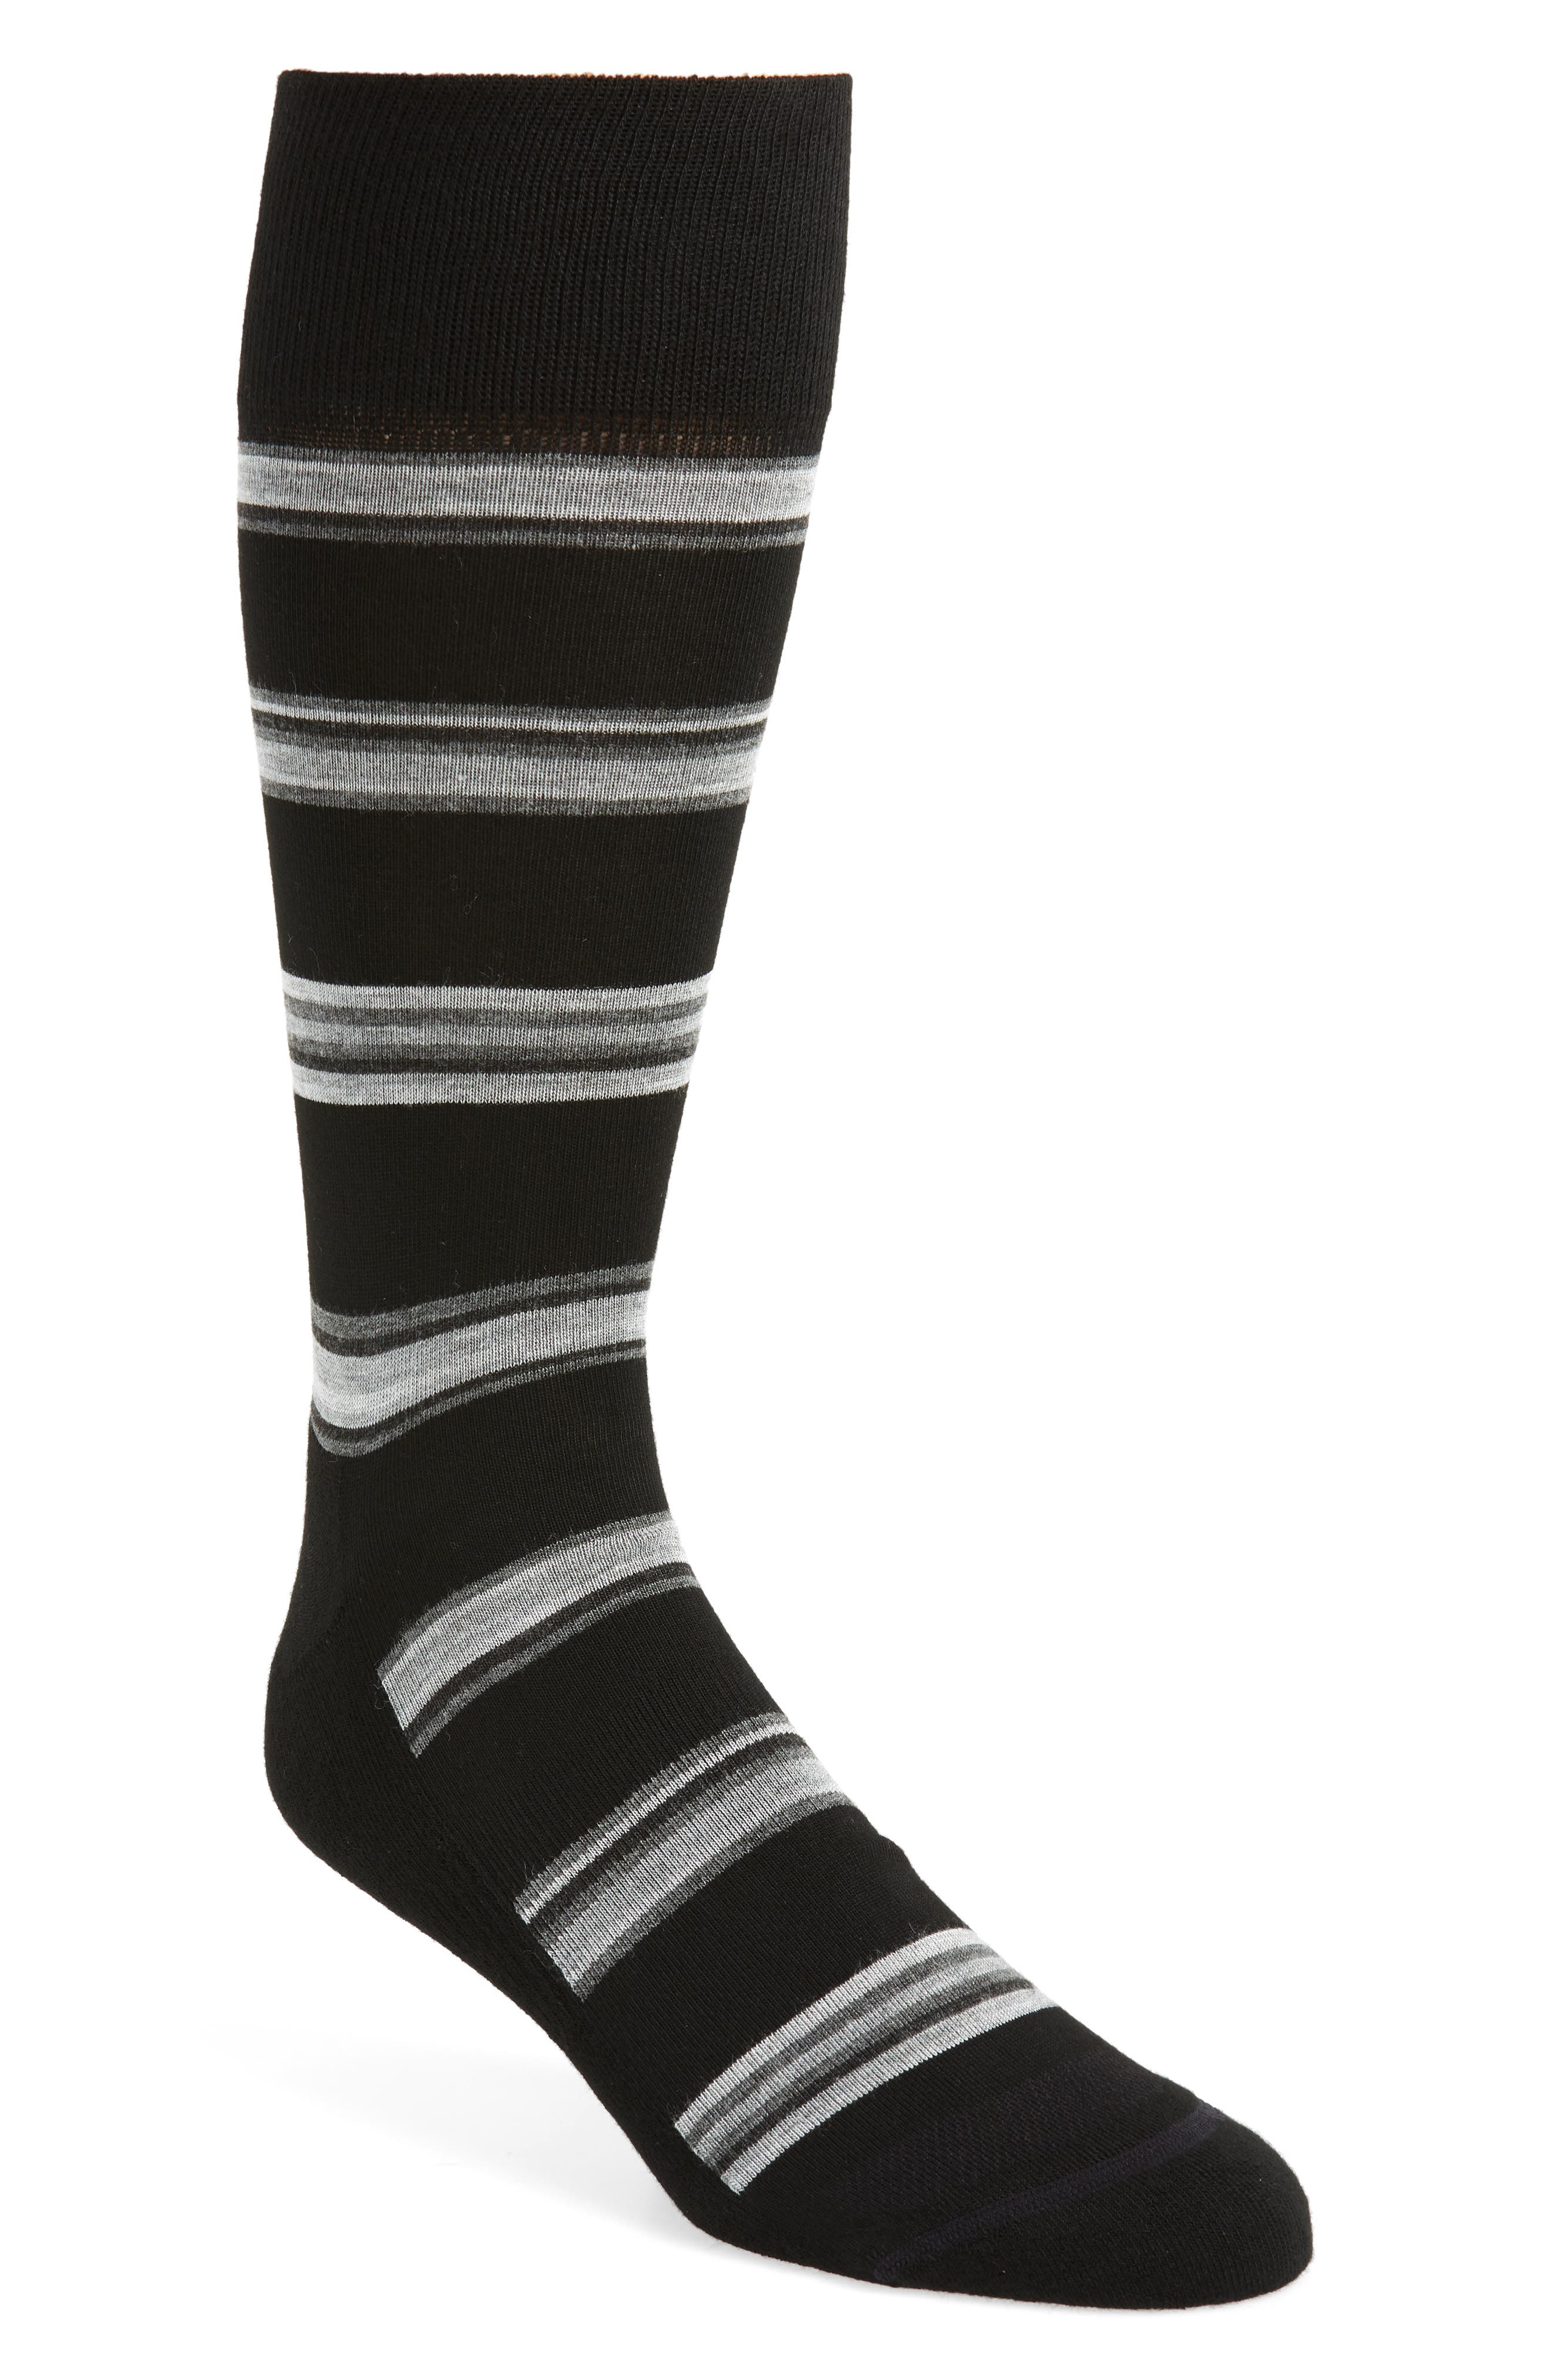 Alternating Rugby Stripe Socks,                             Main thumbnail 1, color,                             BLACK/ GREY